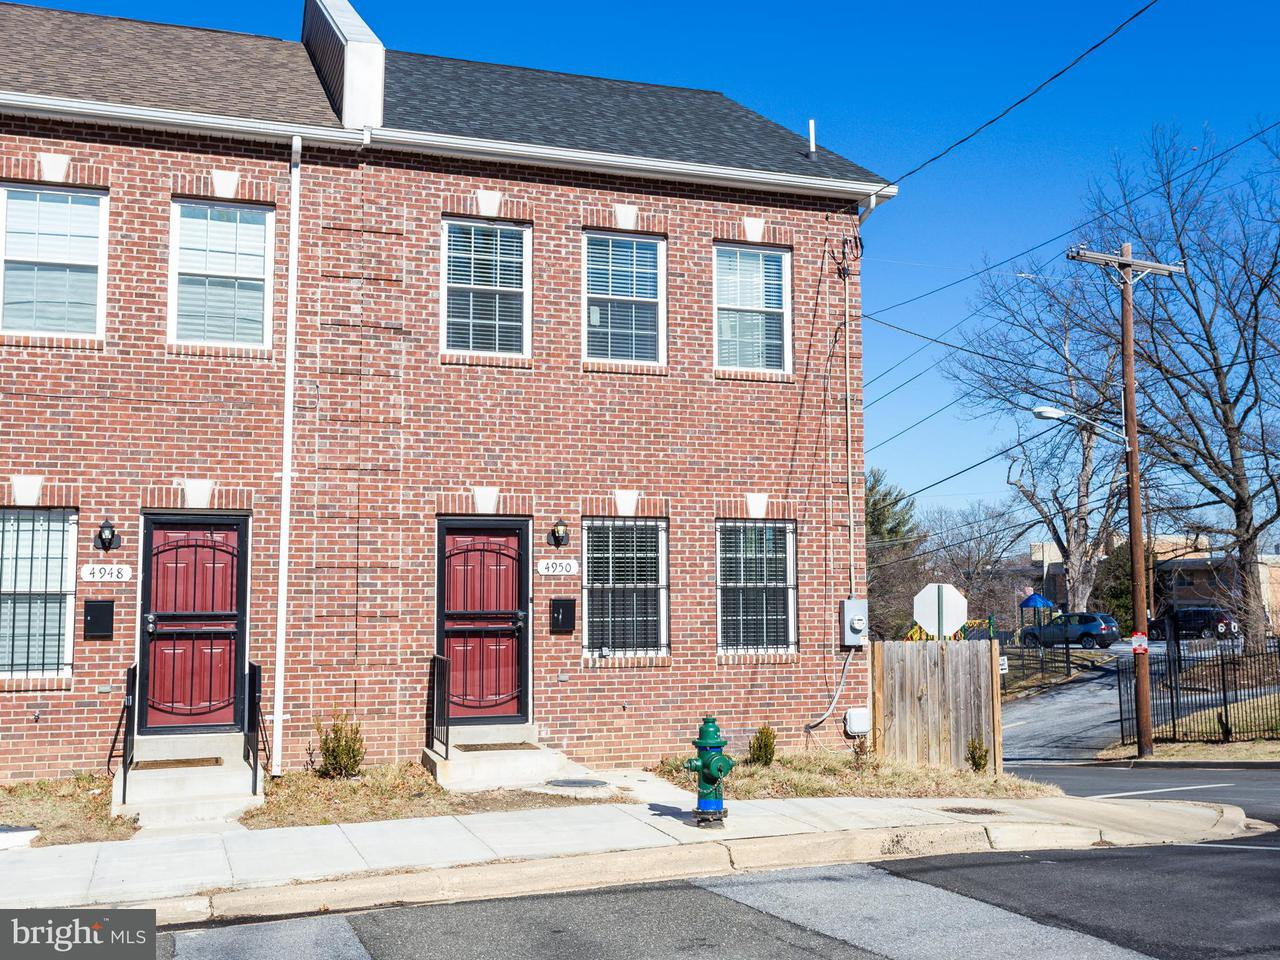 Townhouse for Sale at 4950 Fitch Pl Ne 4950 Fitch Pl Ne Washington, District Of Columbia 20019 United States